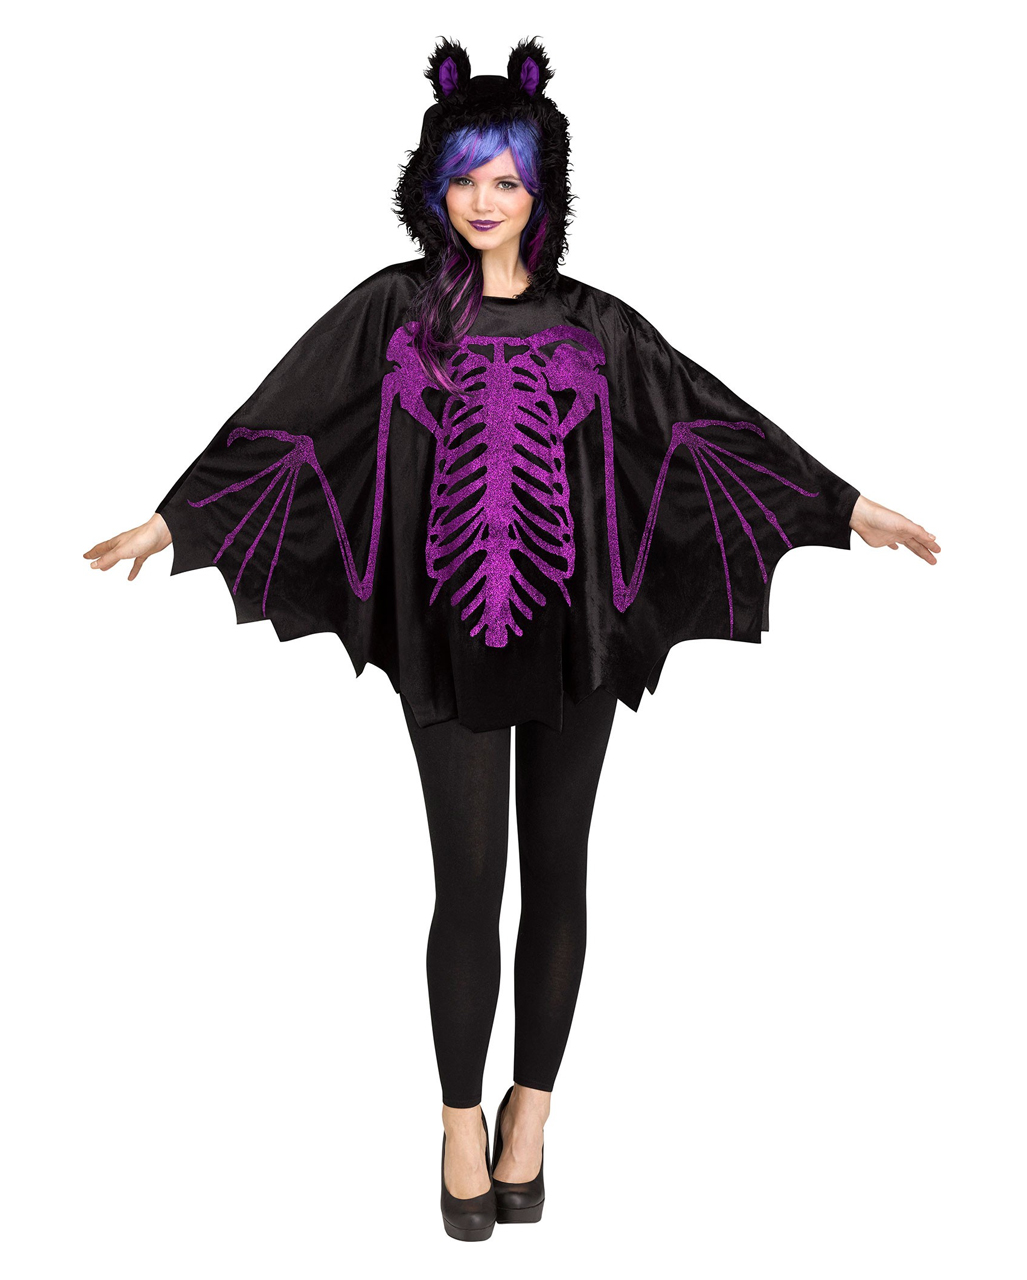 fledermaus kapuzen poncho als halloween kost m horror. Black Bedroom Furniture Sets. Home Design Ideas